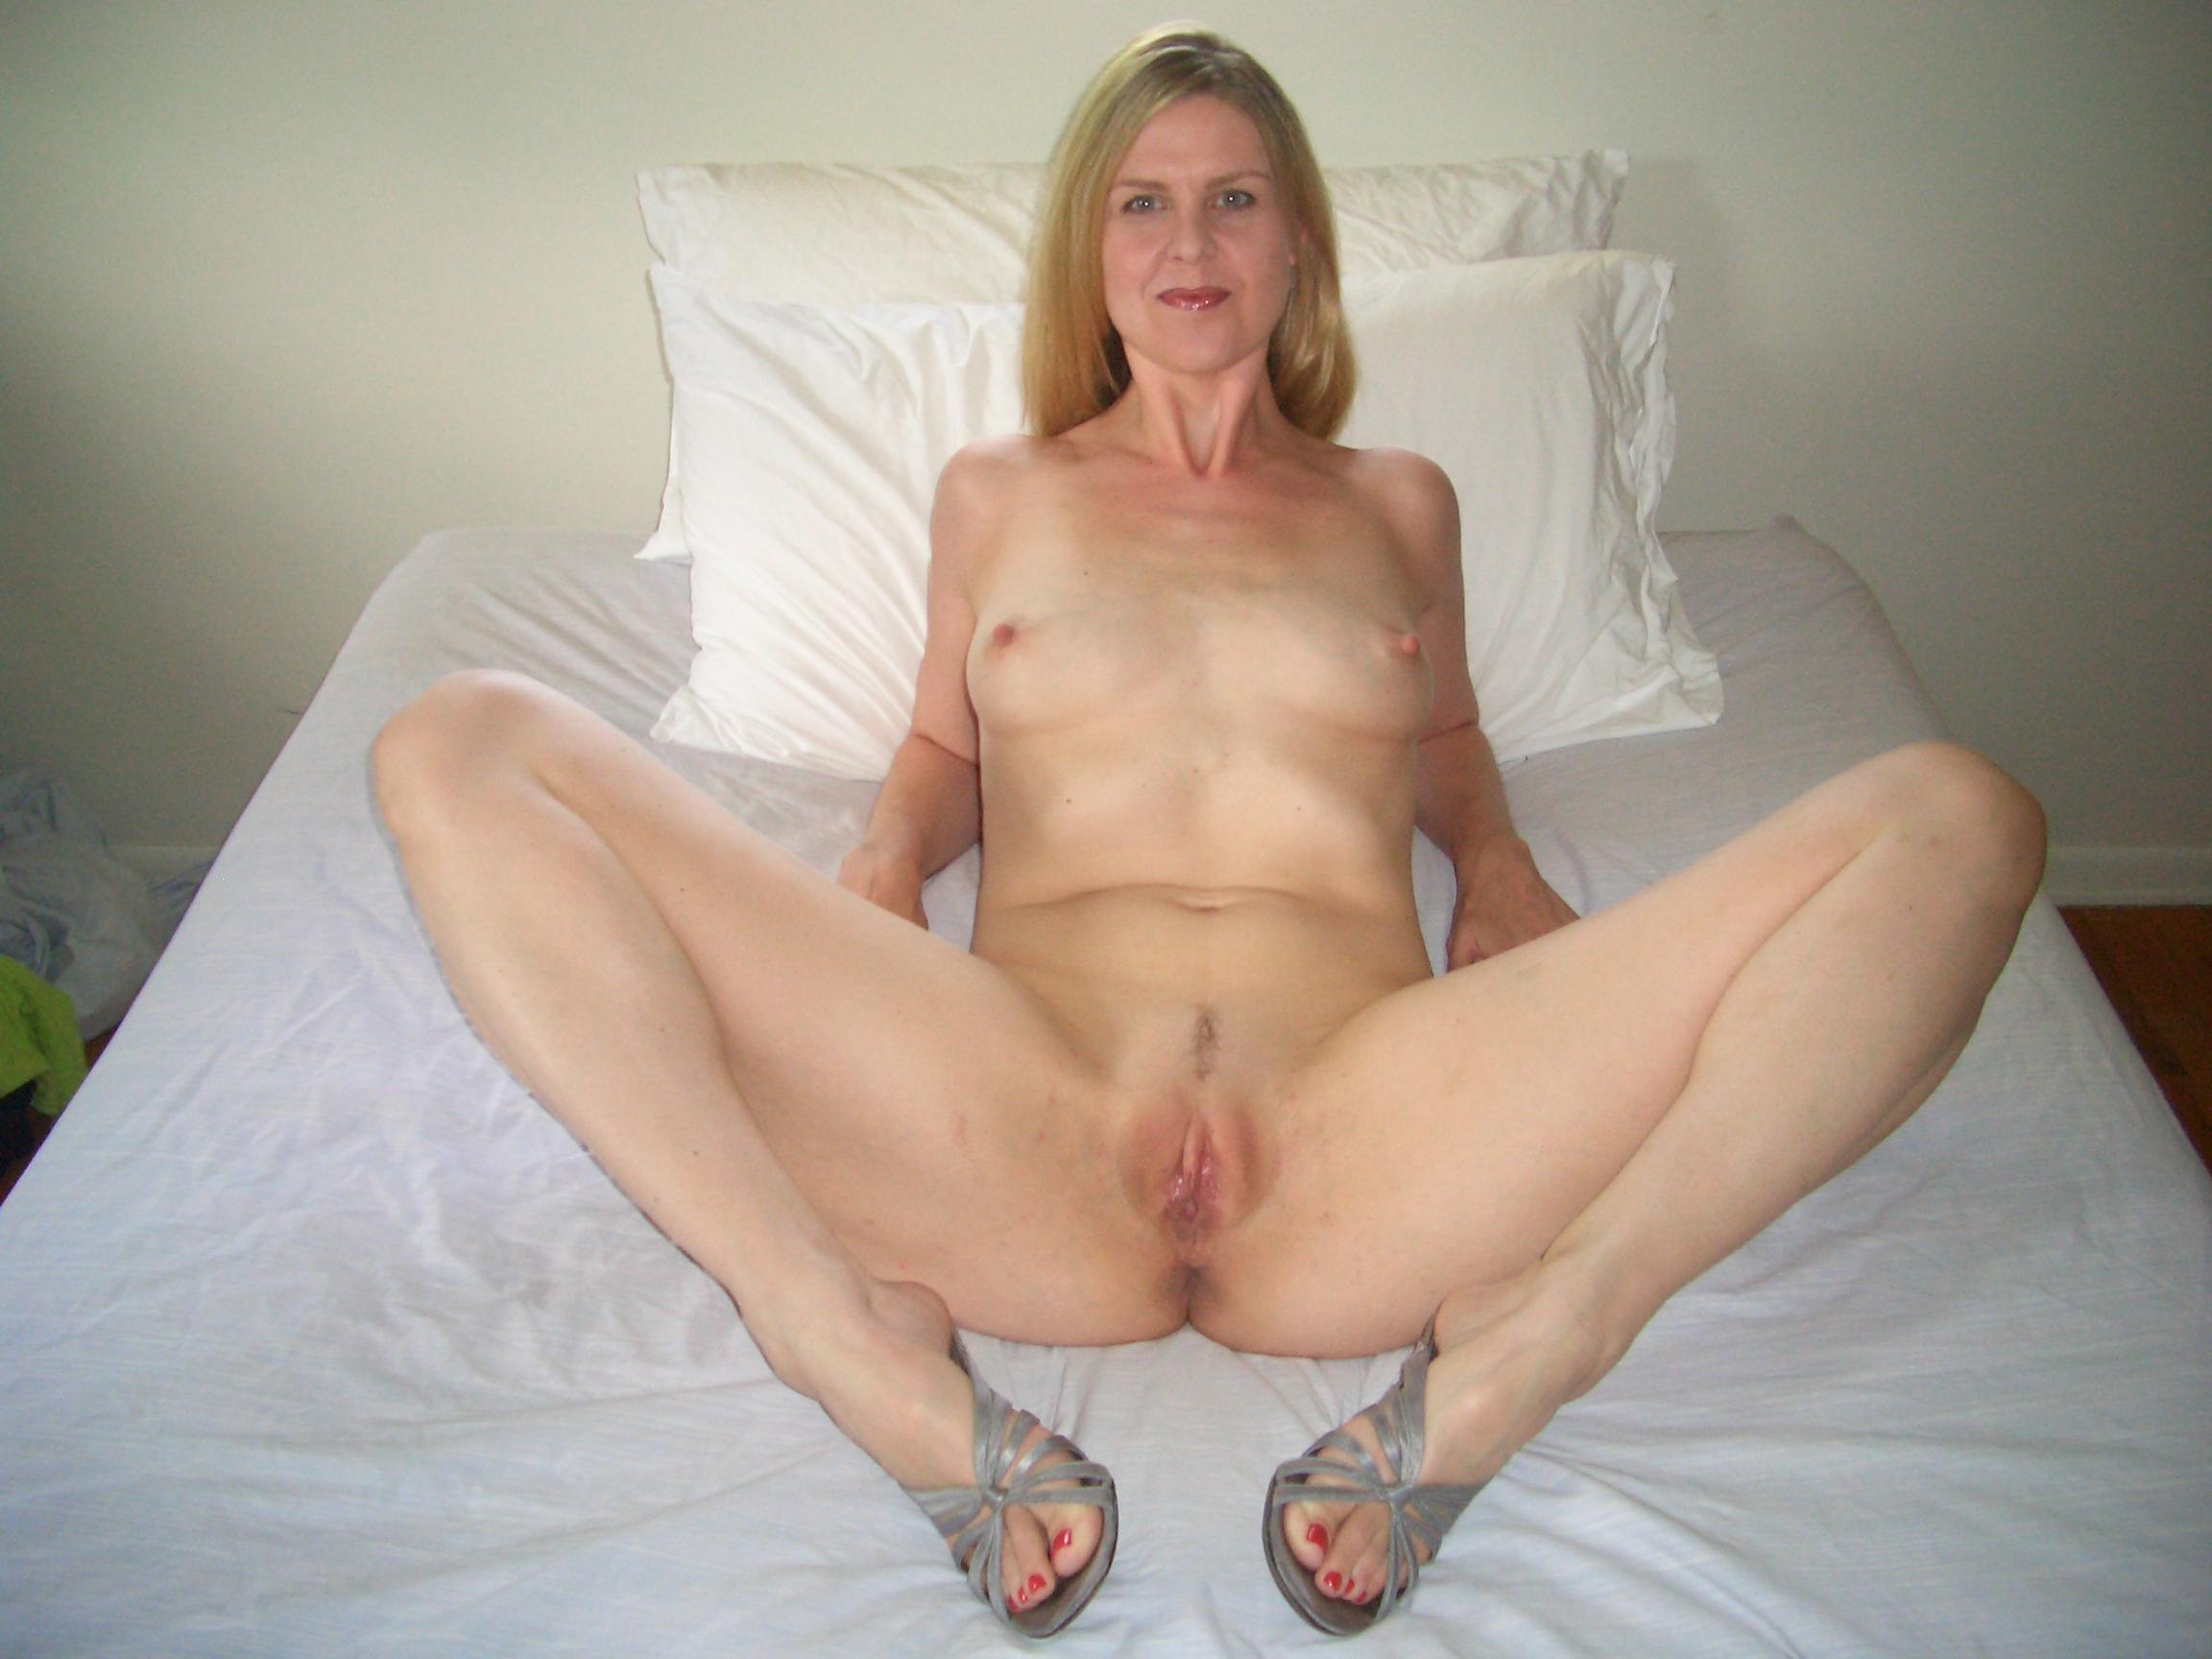 naked-amatuer-spreads-sex-godess